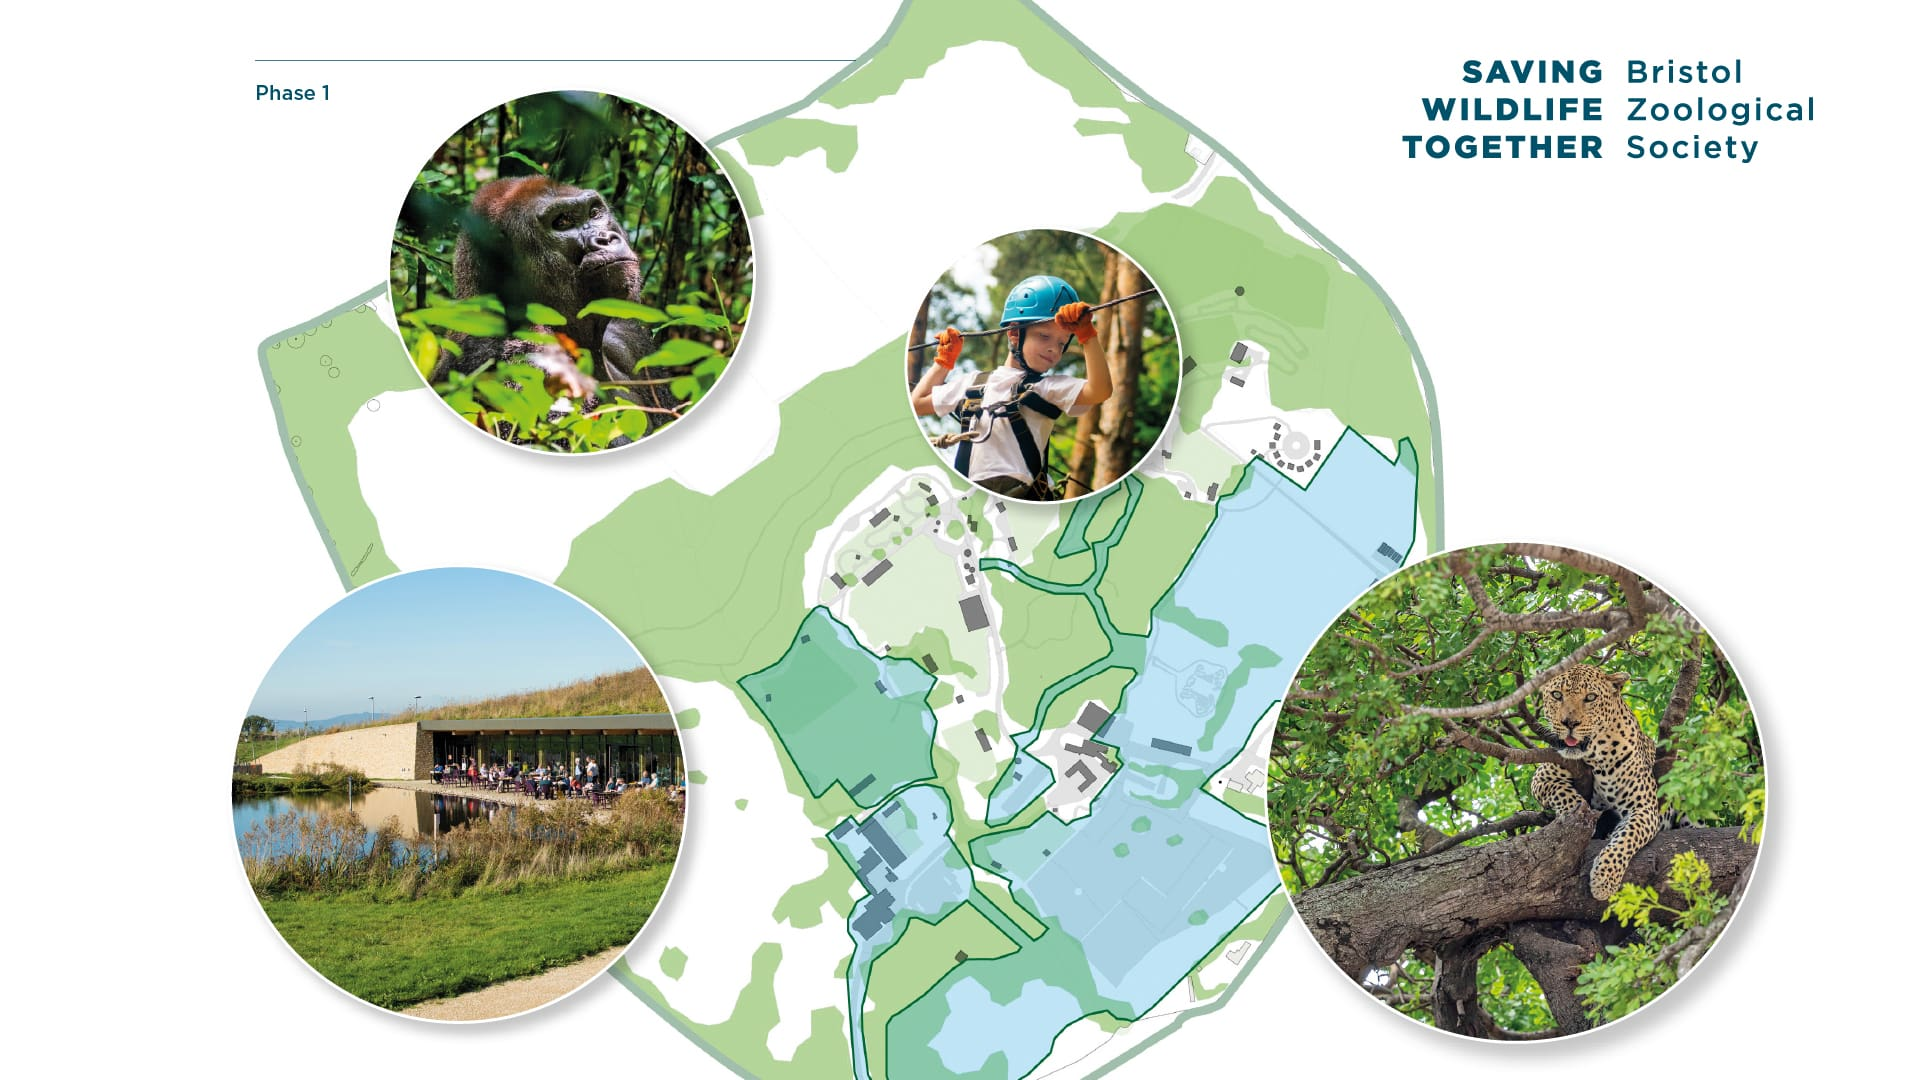 Strategy to 2035 moodboard showing site plan and example photos of animals in natural environment and visitors enjoying themselves outdoors